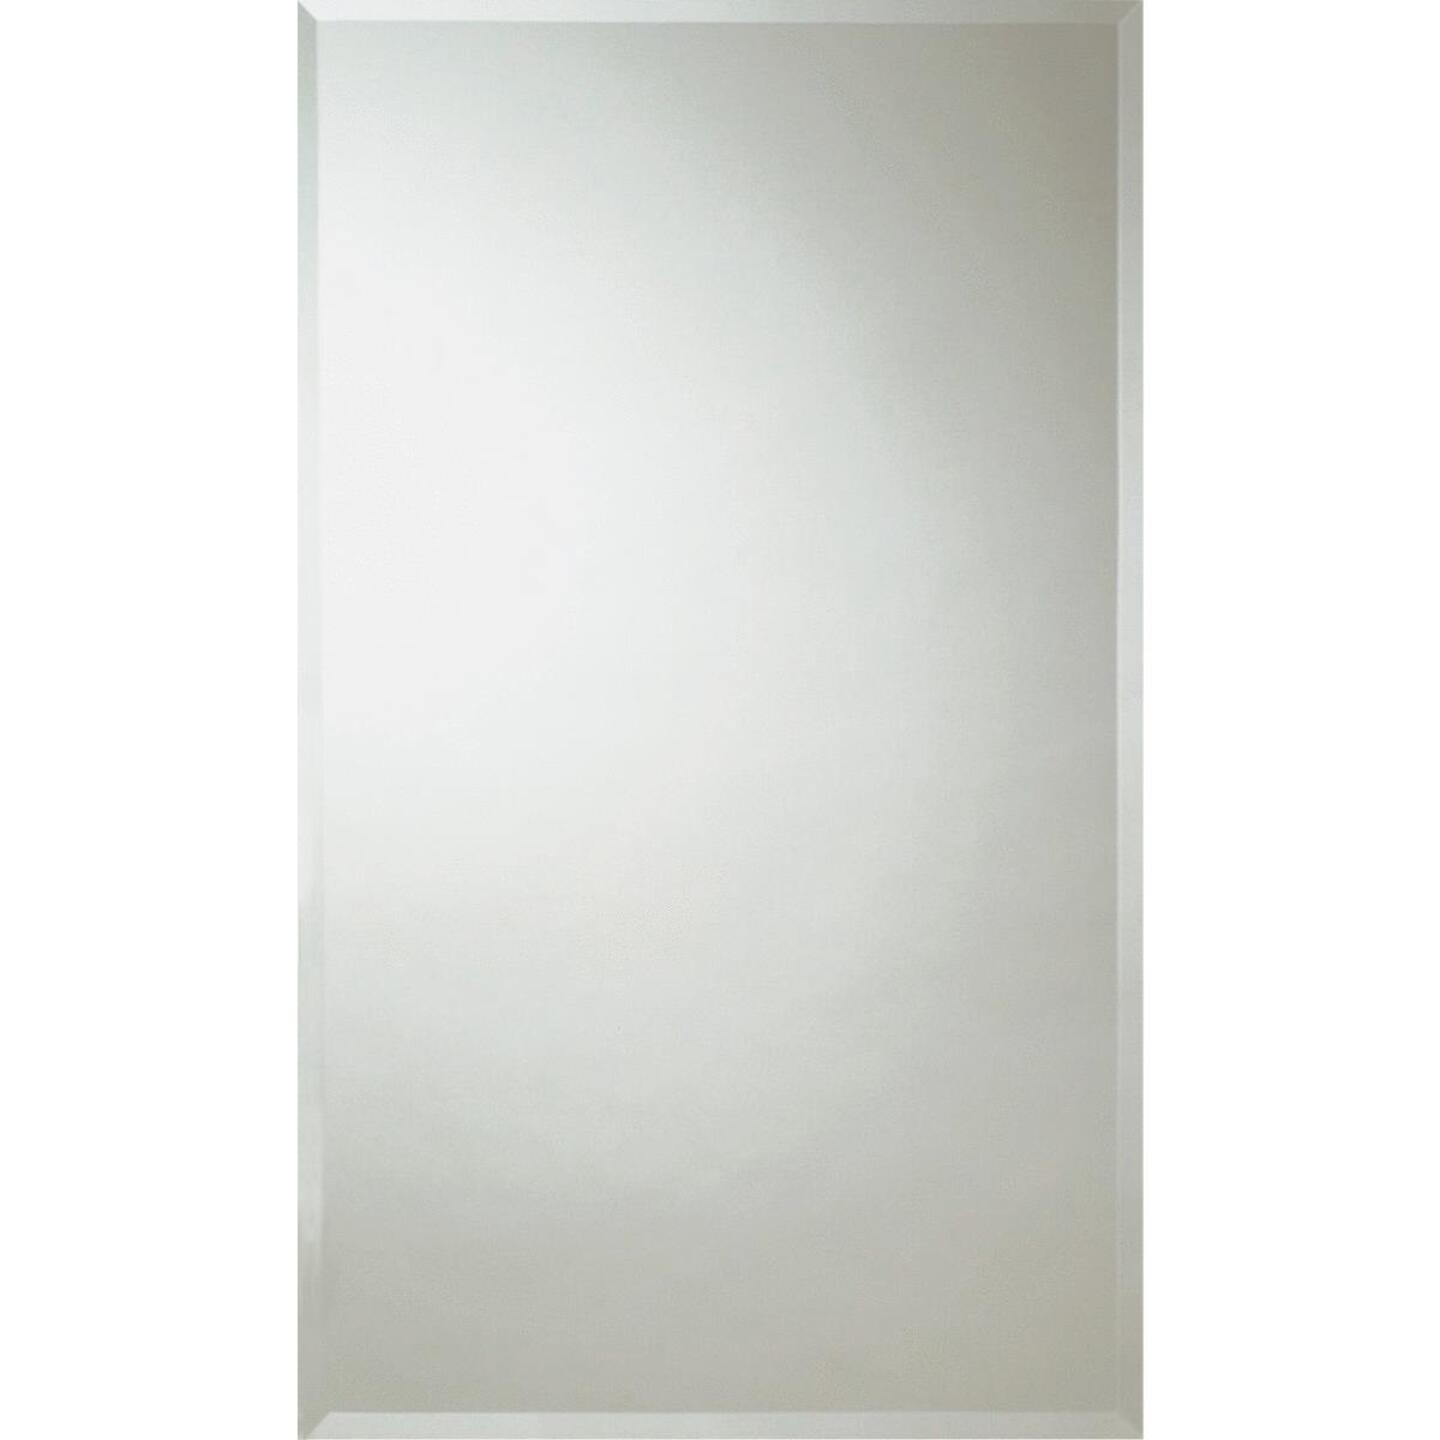 Zenith Frameless Beveled 16 In. W x 26 In. H x 4-1/2 In. D Single Mirror Surface/Recess Mount Medicine Cabinet Image 1